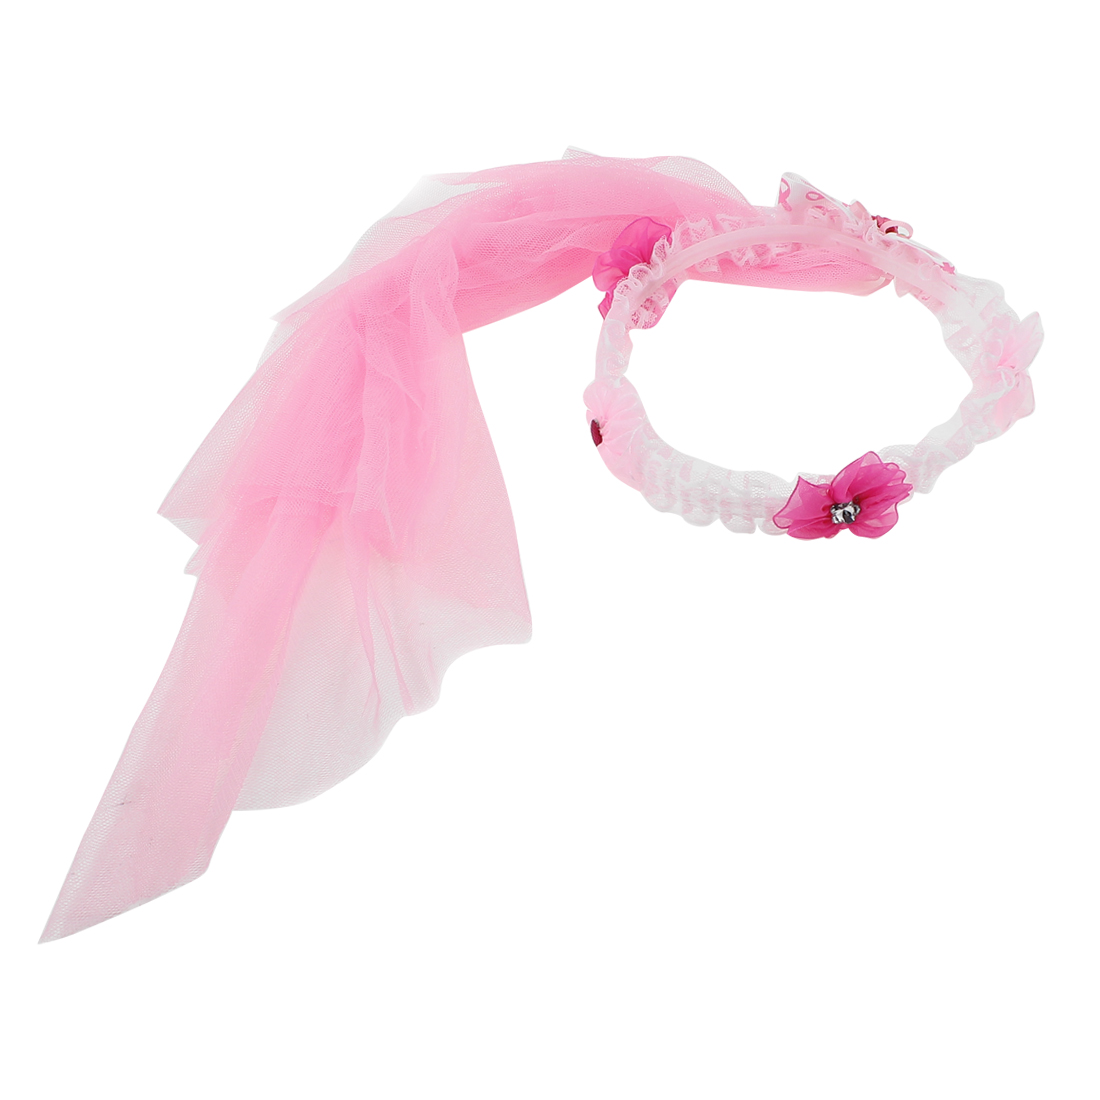 Bridal Wedding Party Flower Decor Adjustable Headdress Garland Wreath Veil Pink